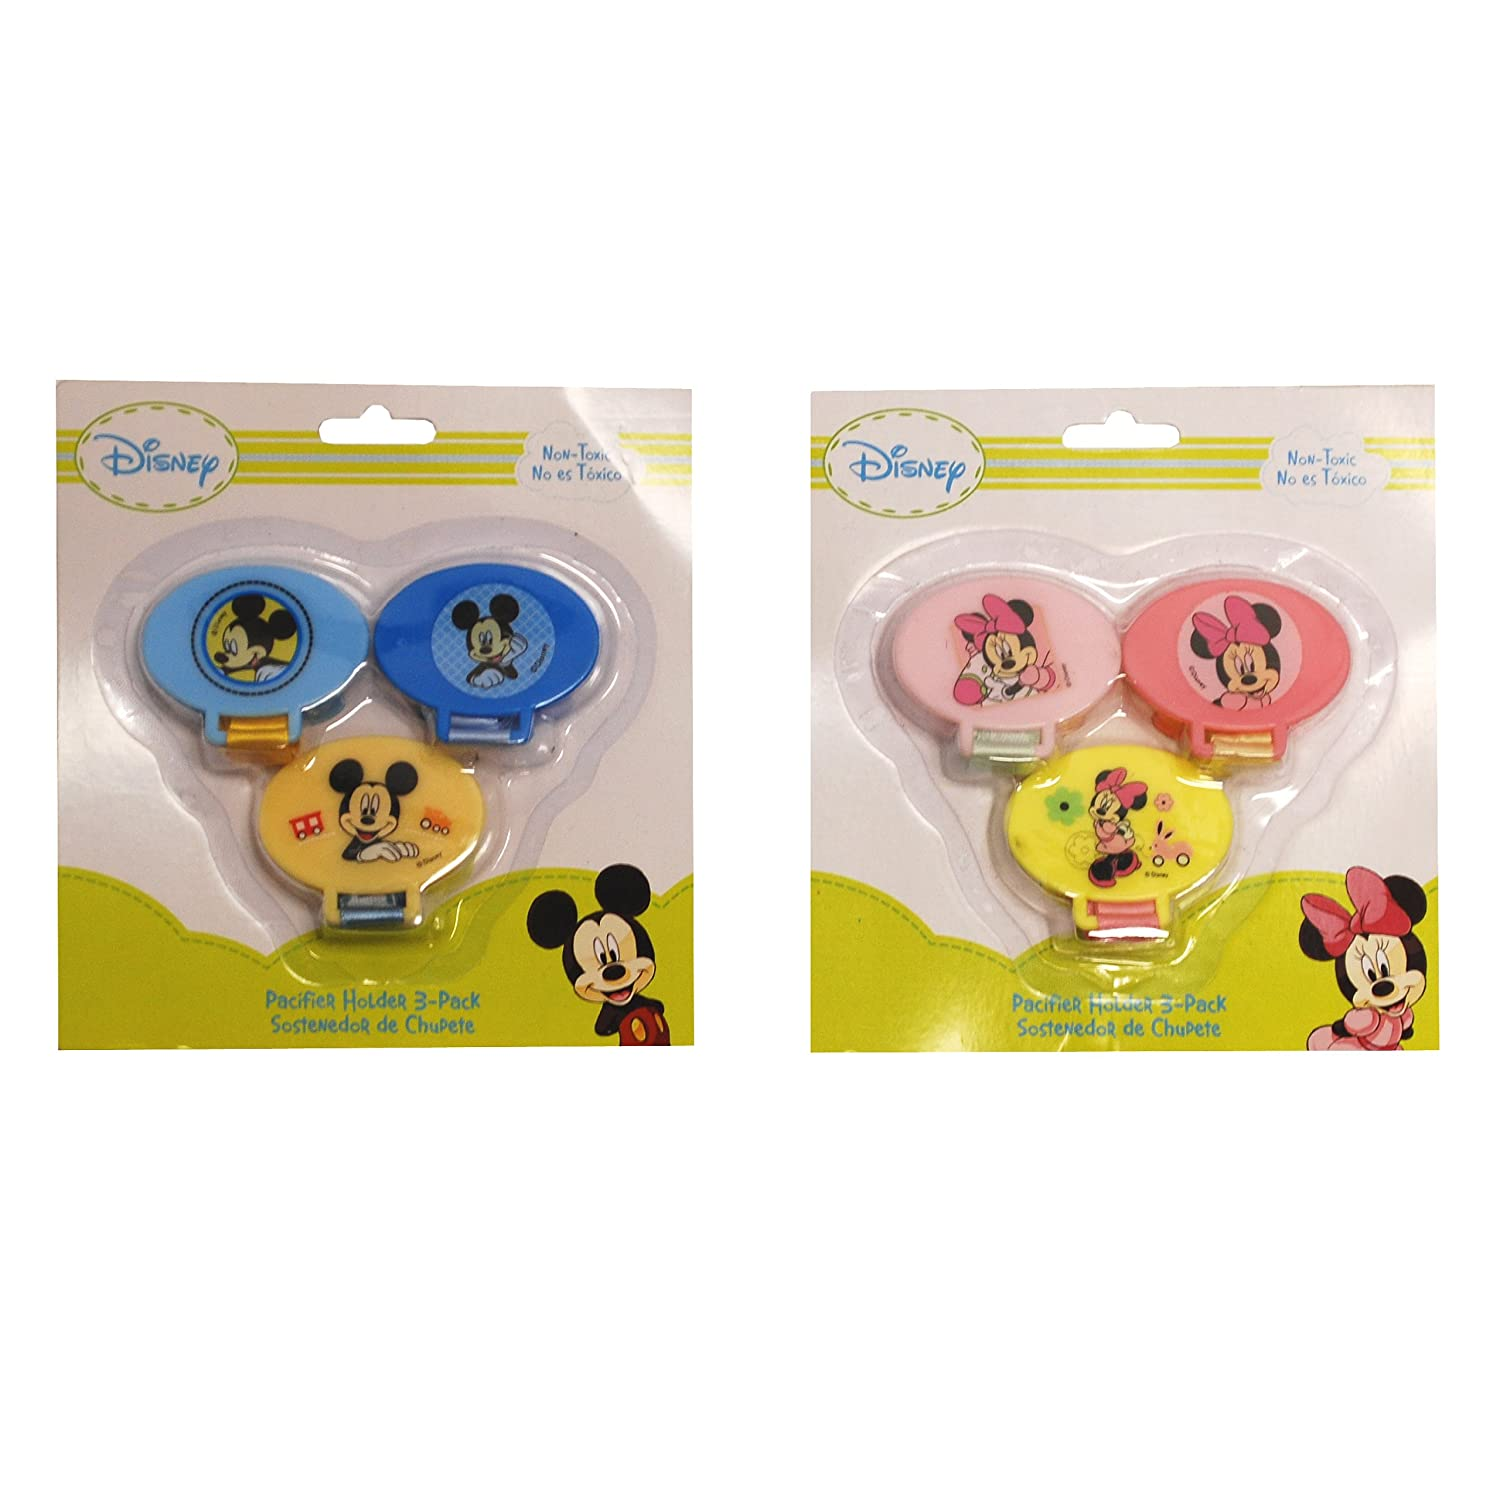 Amazon.com : Disney Mickey Mouse Pacifier Holder 3 Pack ...